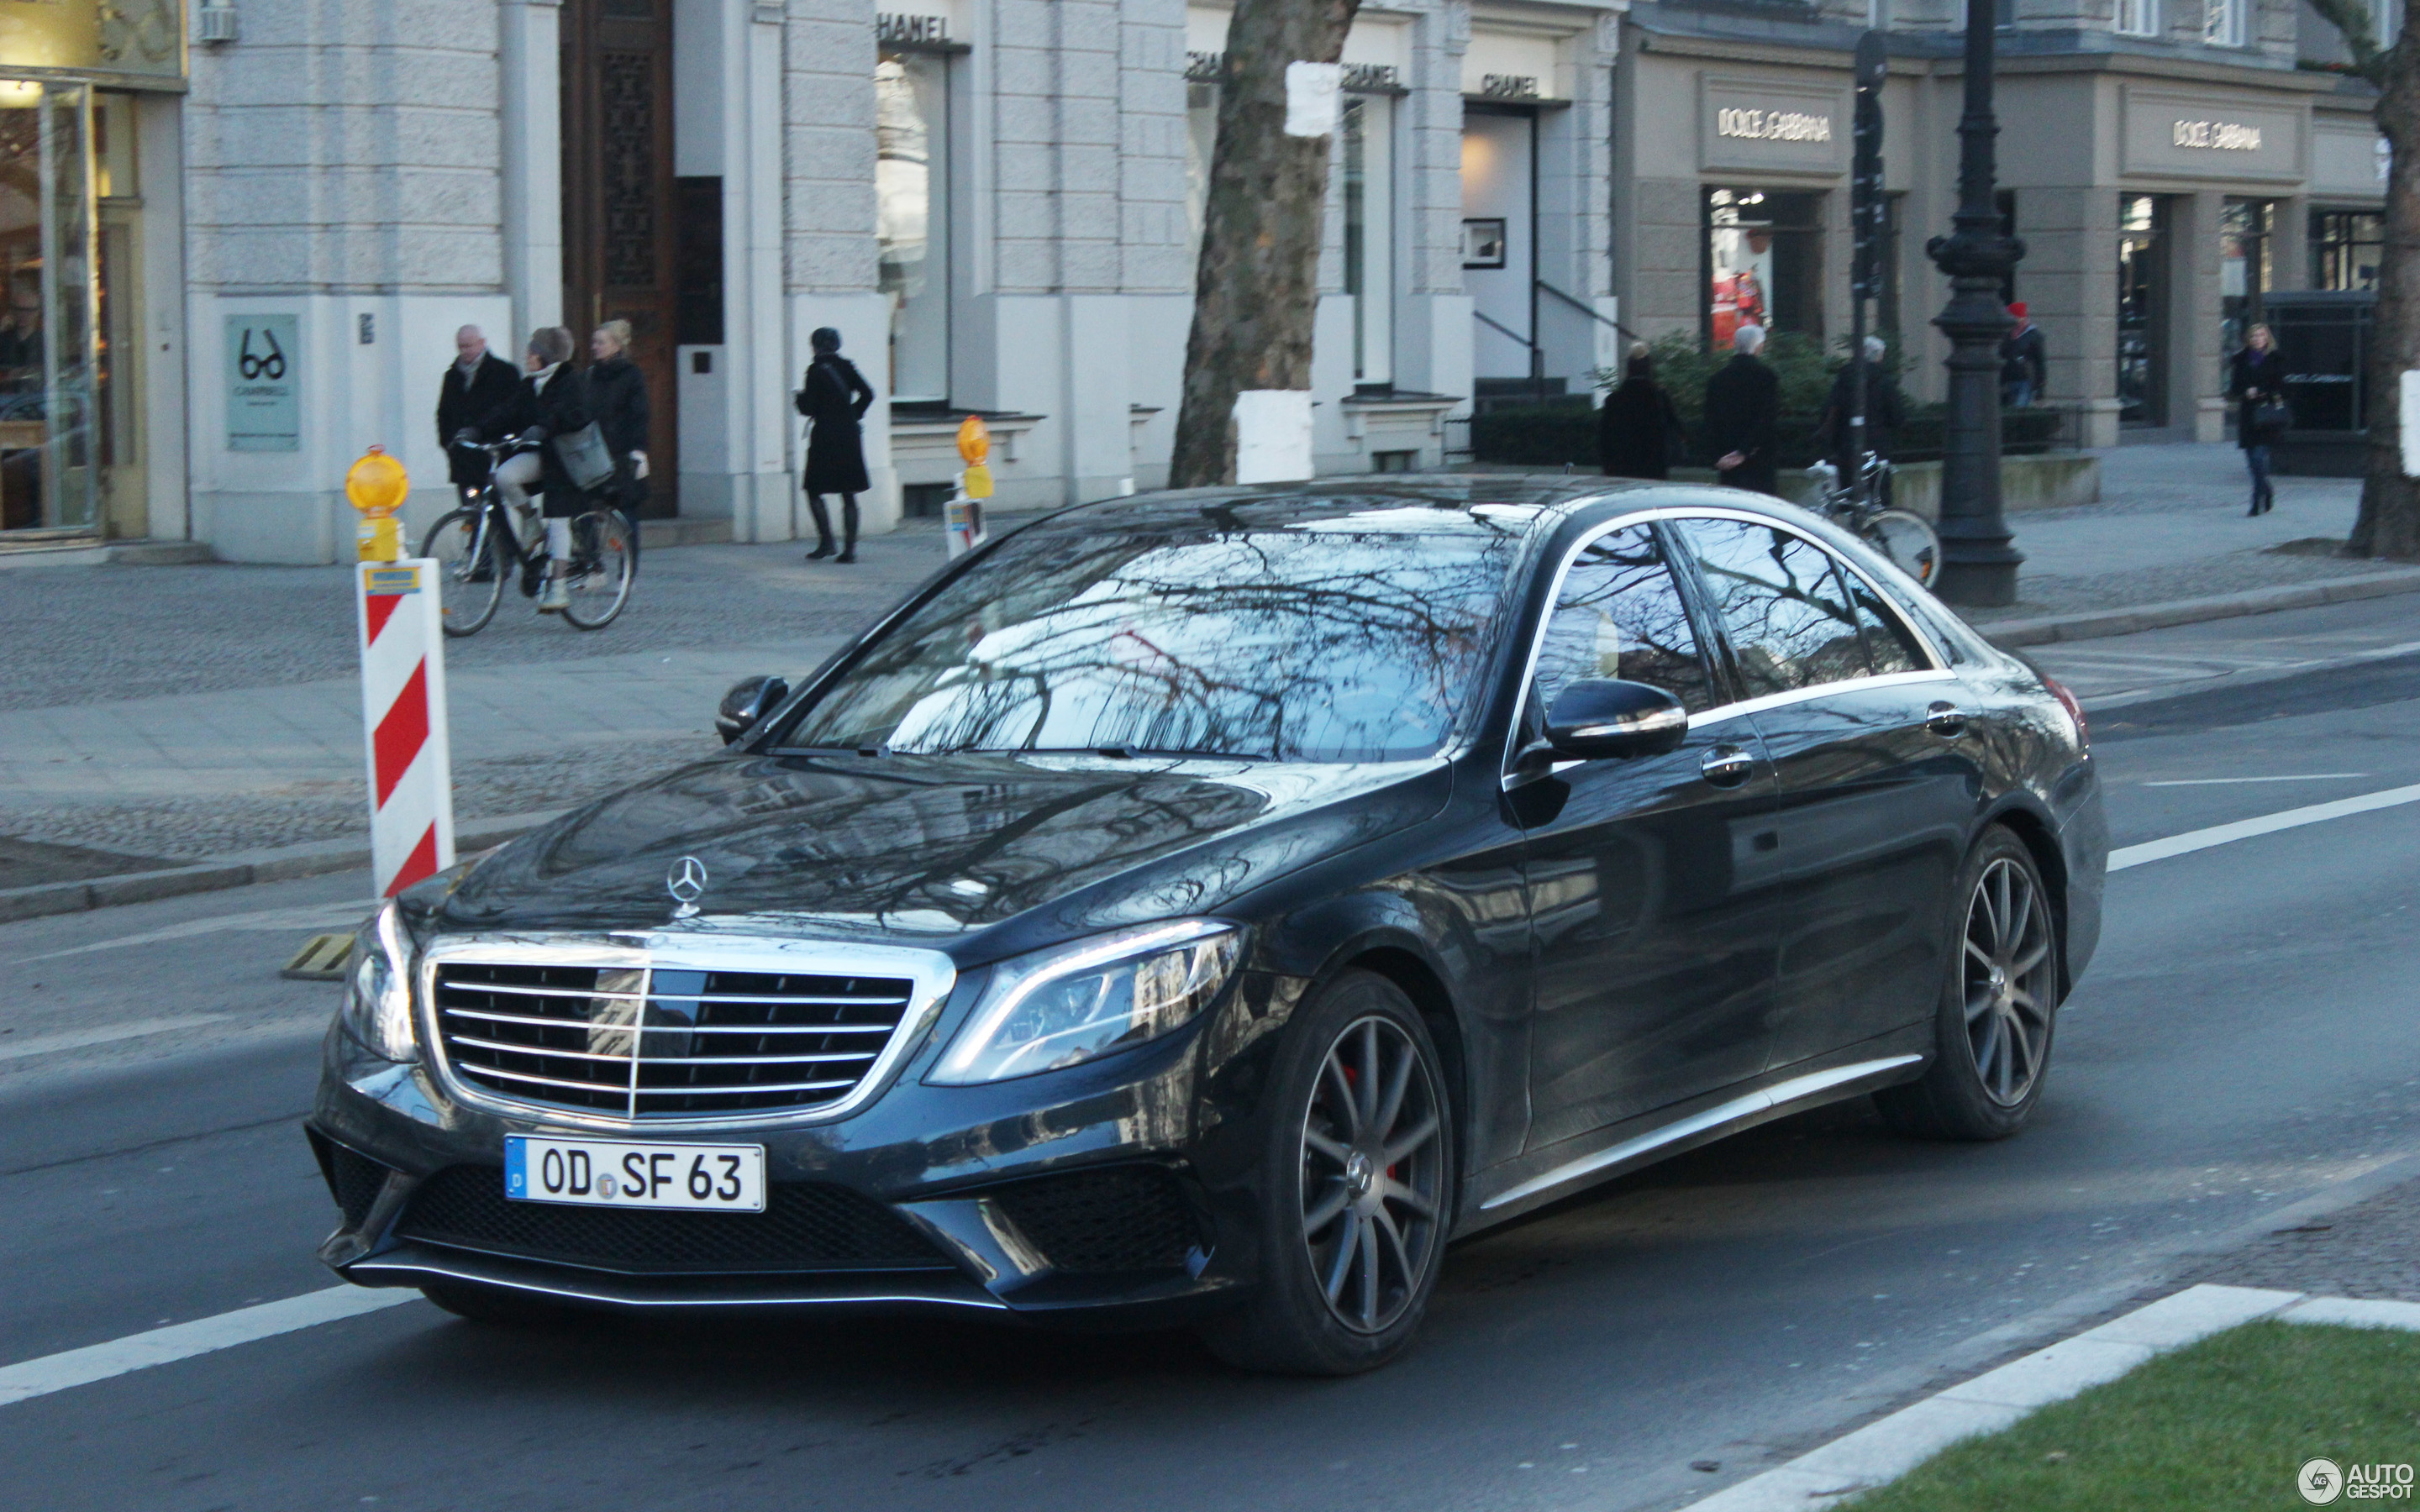 Mercedes Benz S 63 AMG V222 13 February 2015 Autogespot